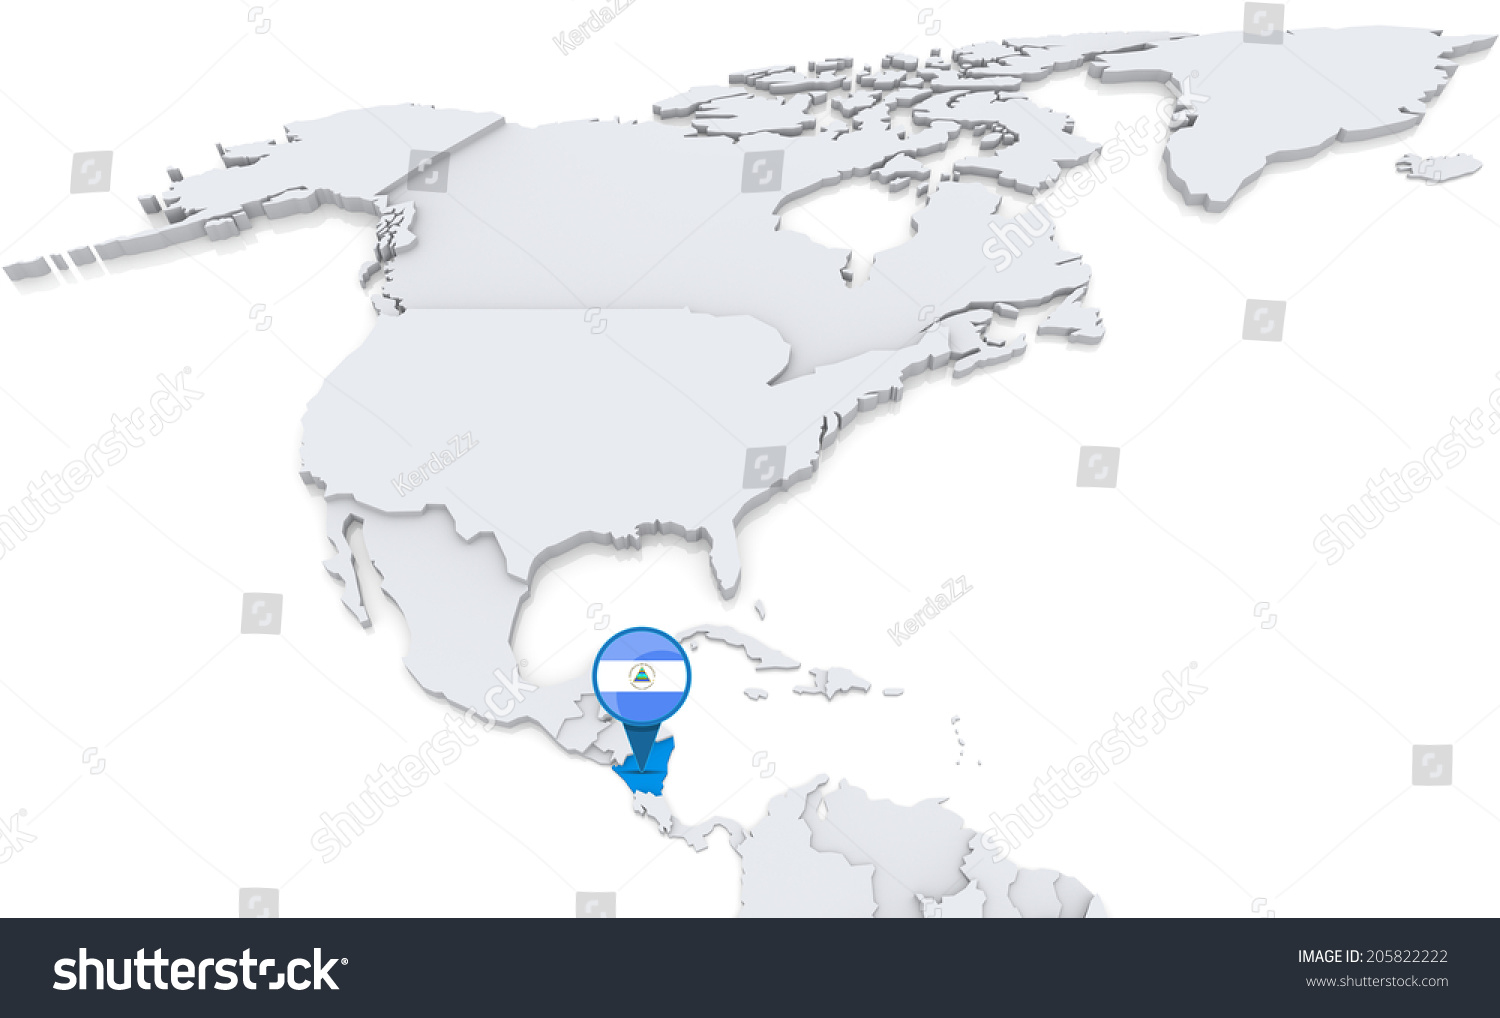 Highlighted nicaragua on map north america stock illustration highlighted nicaragua on map north america stock illustration 205822222 shutterstock gumiabroncs Image collections